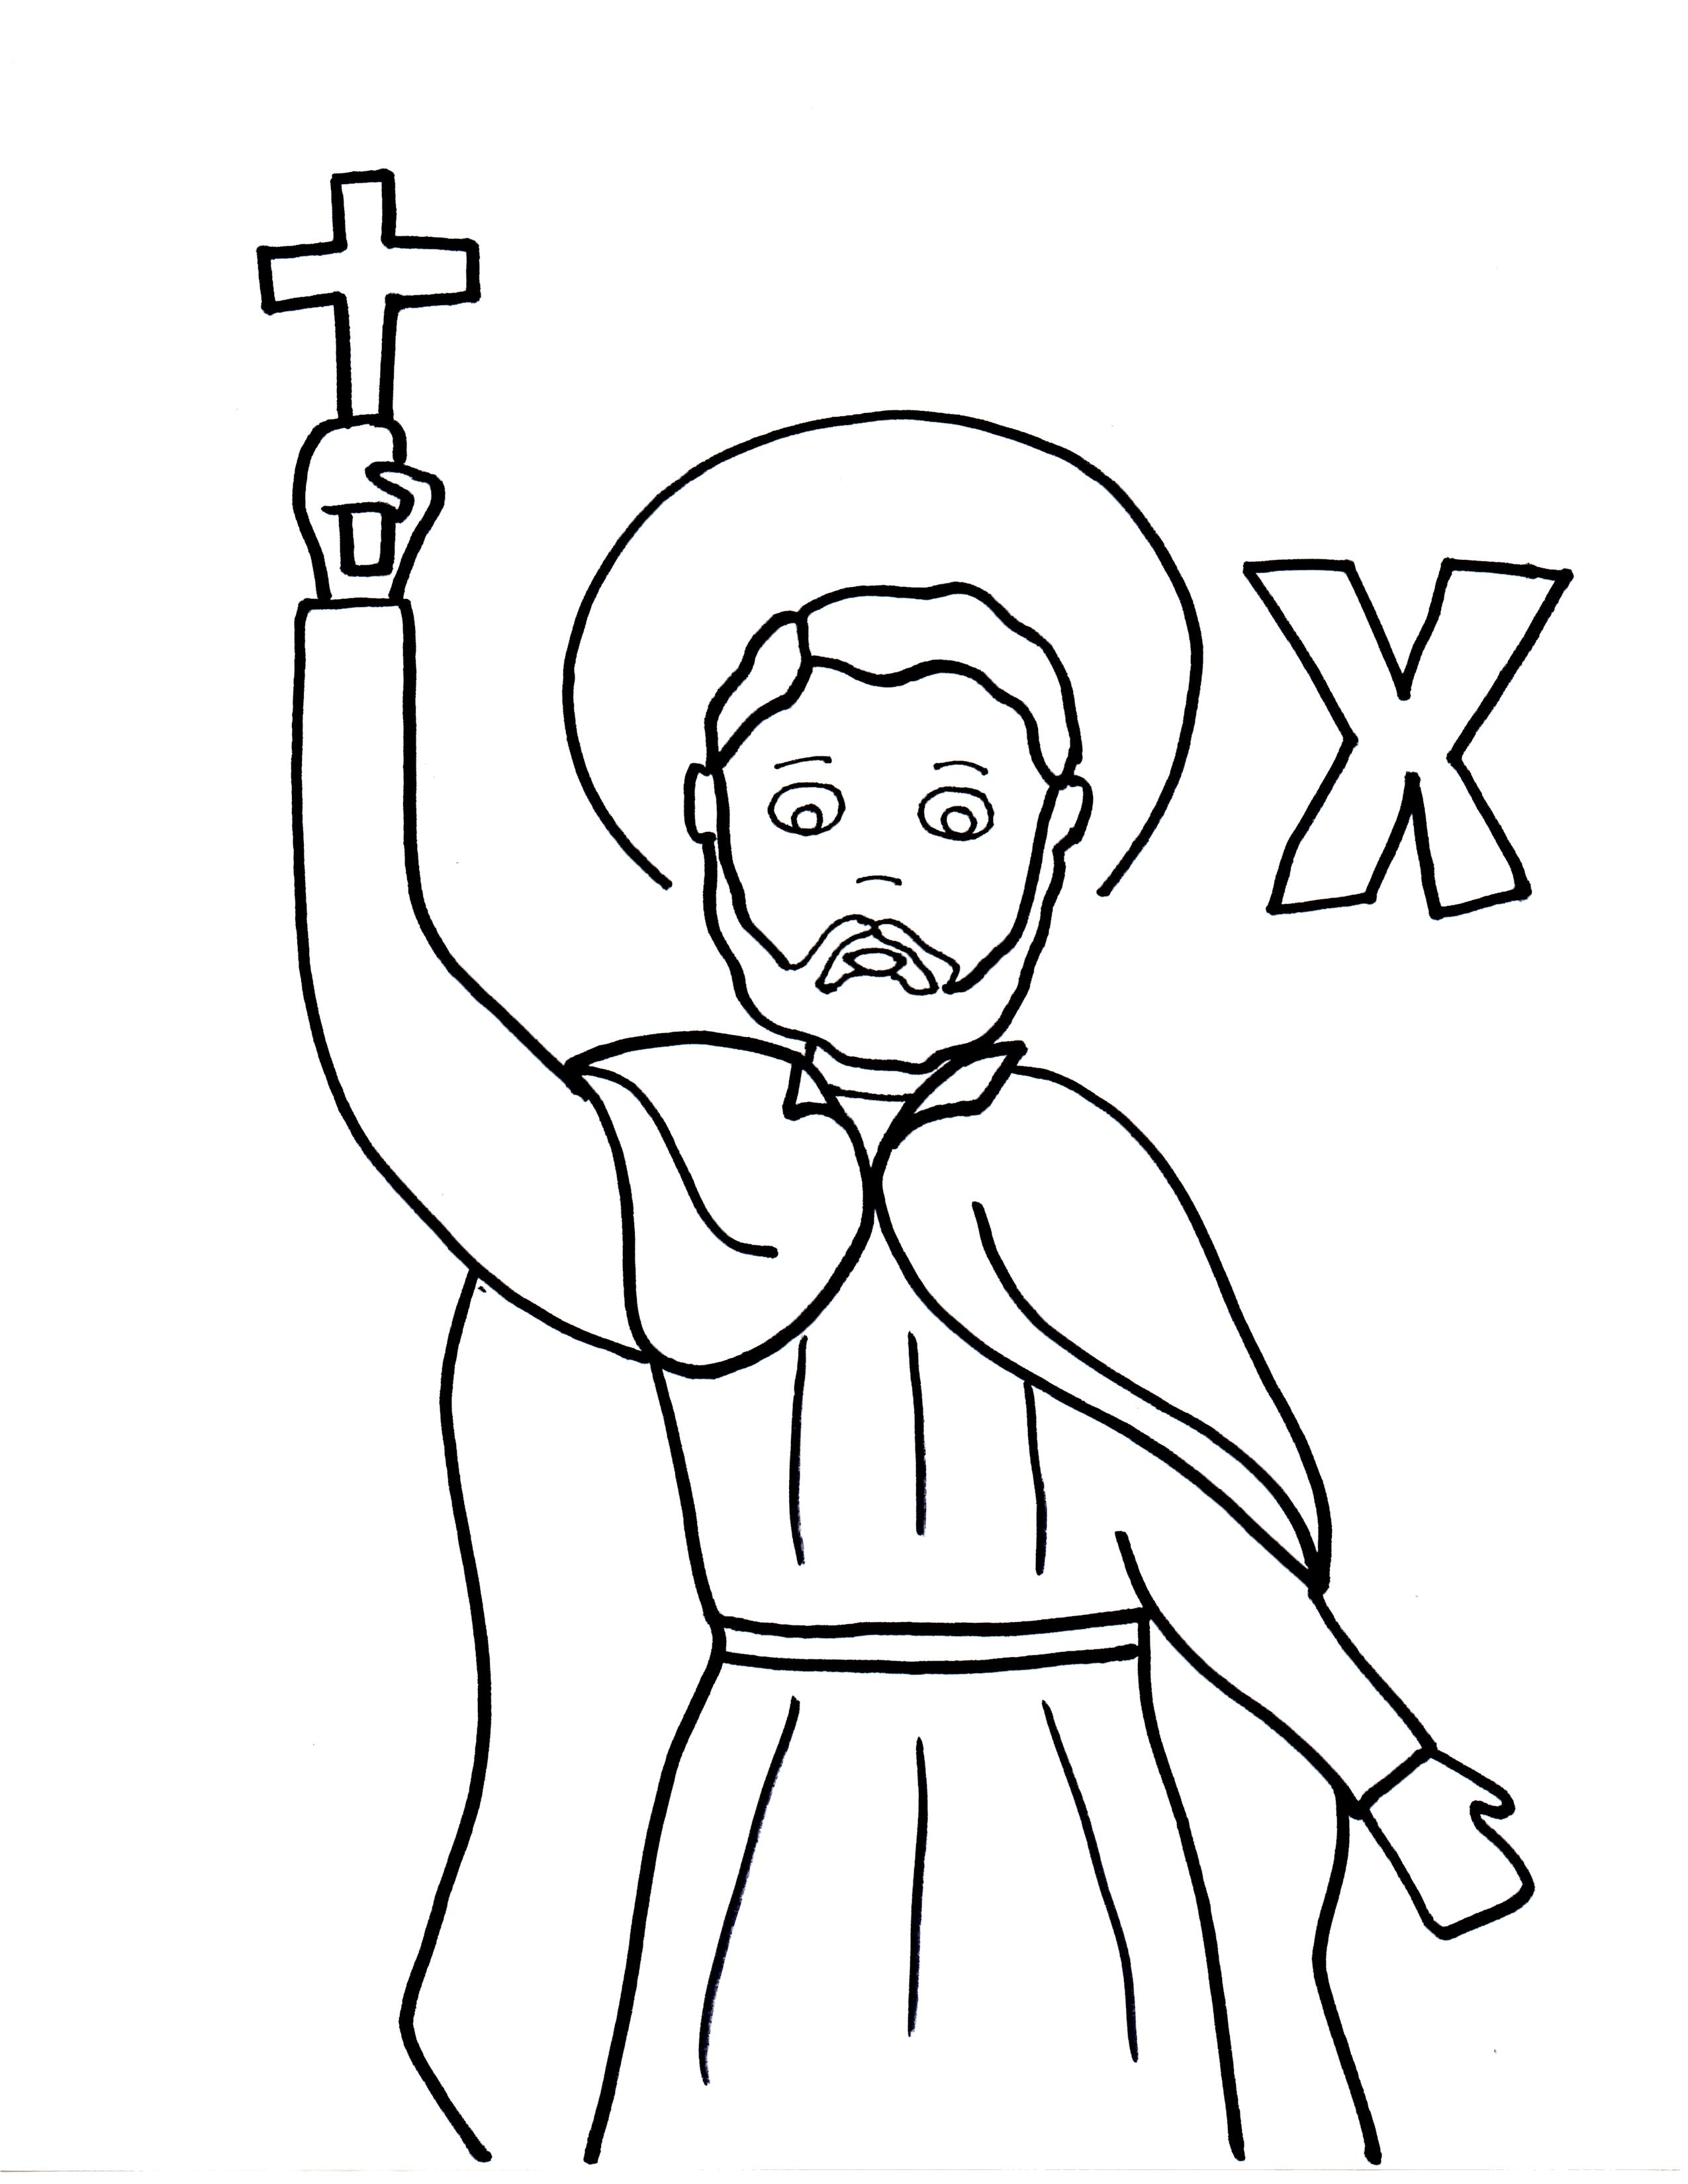 2550x3300 X Is For St. Francis Xavier Saints To Color